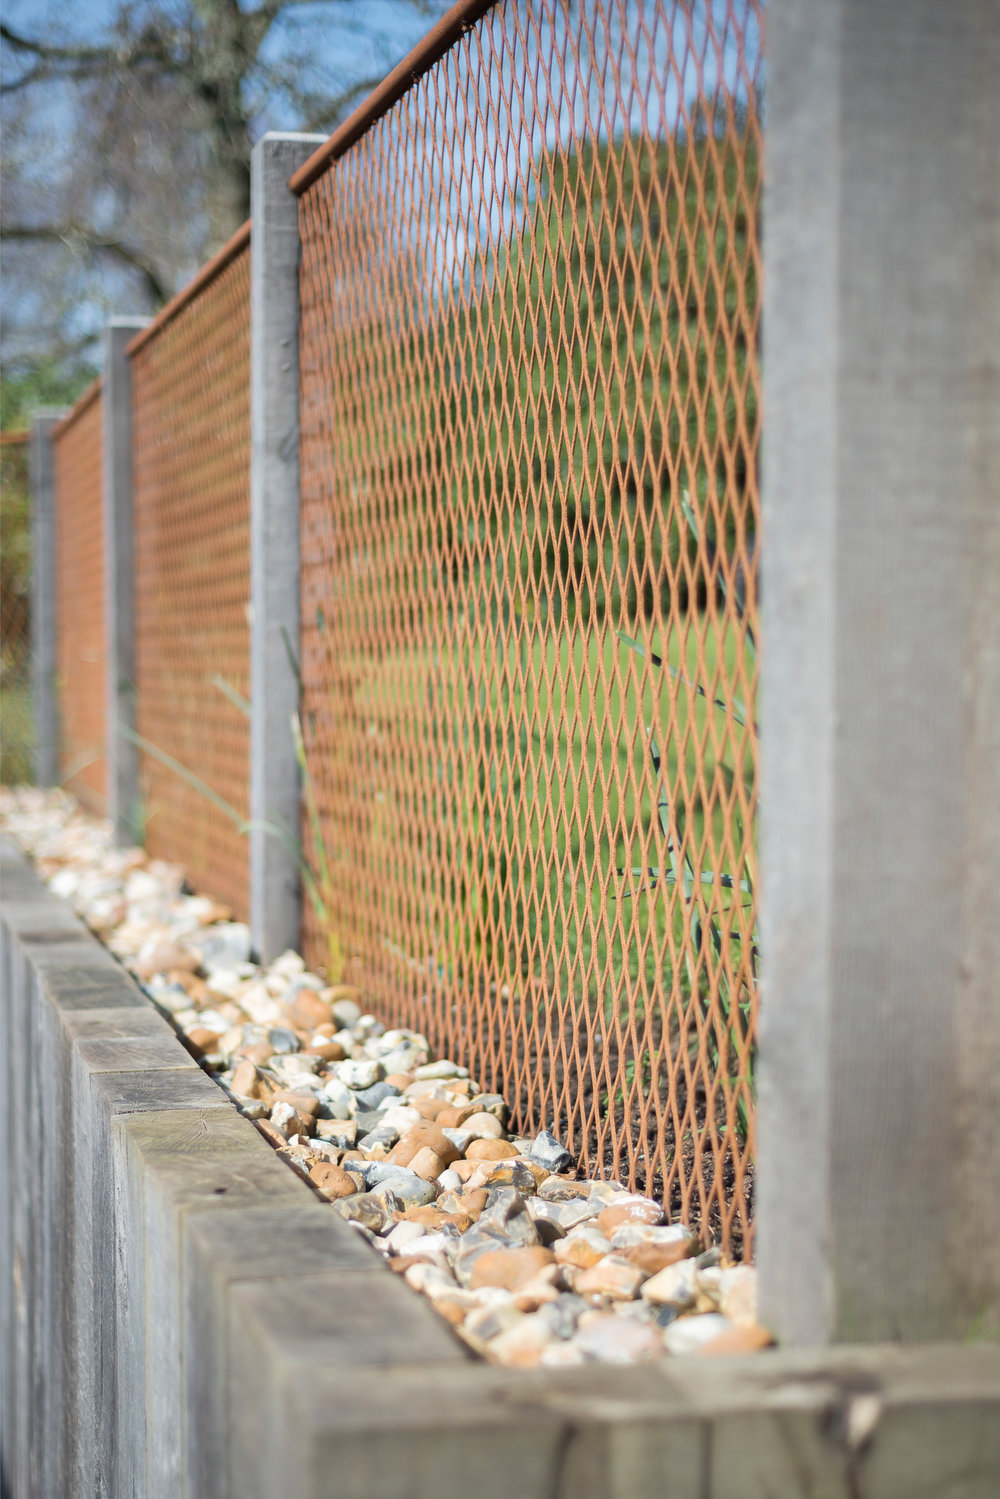 Oak Post and Mesh Fence set on Retaining Wall